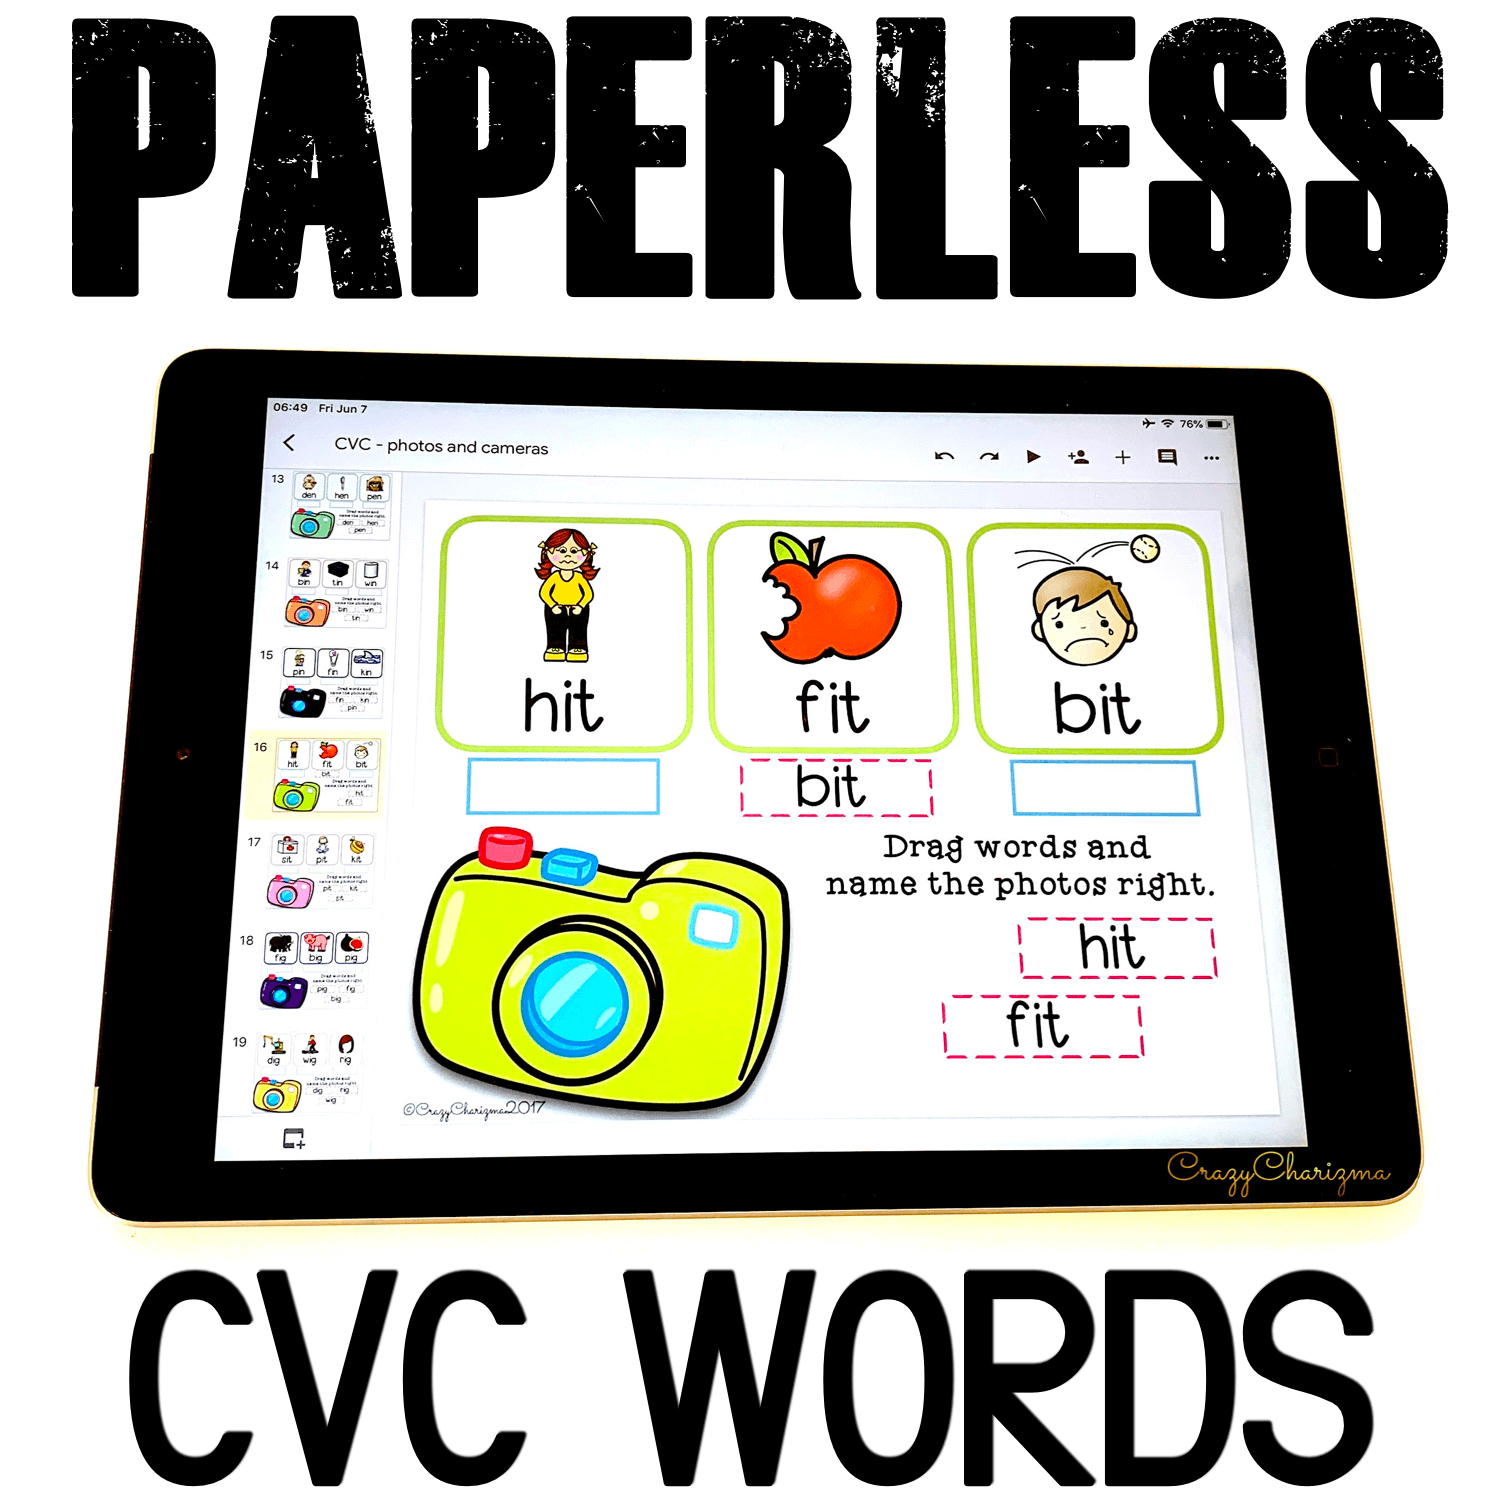 Looking for engaging CVC words kindergarten activities? Get these word work centers for Google Classroom. Perfect for guided reading groups, homework and 1:1 work. #CrazyCharizma #GoogleClassroom #GoogleClassroomKindergarten #HandsOnActivitiesForKids #PaperlessClassroomElementary #PhonicsGames